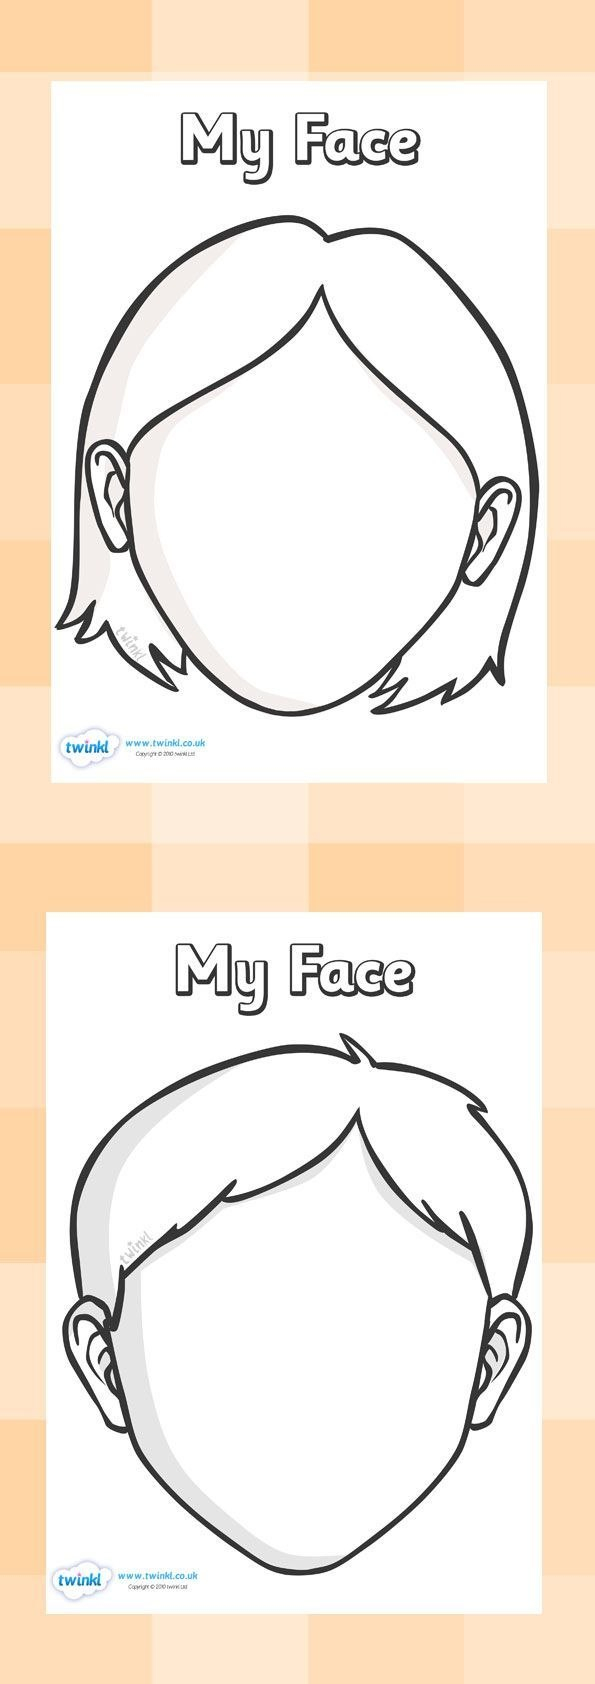 Blank Faces Templates Free Printables  Children Can Draw Things Throughout Blank Face Template Preschool